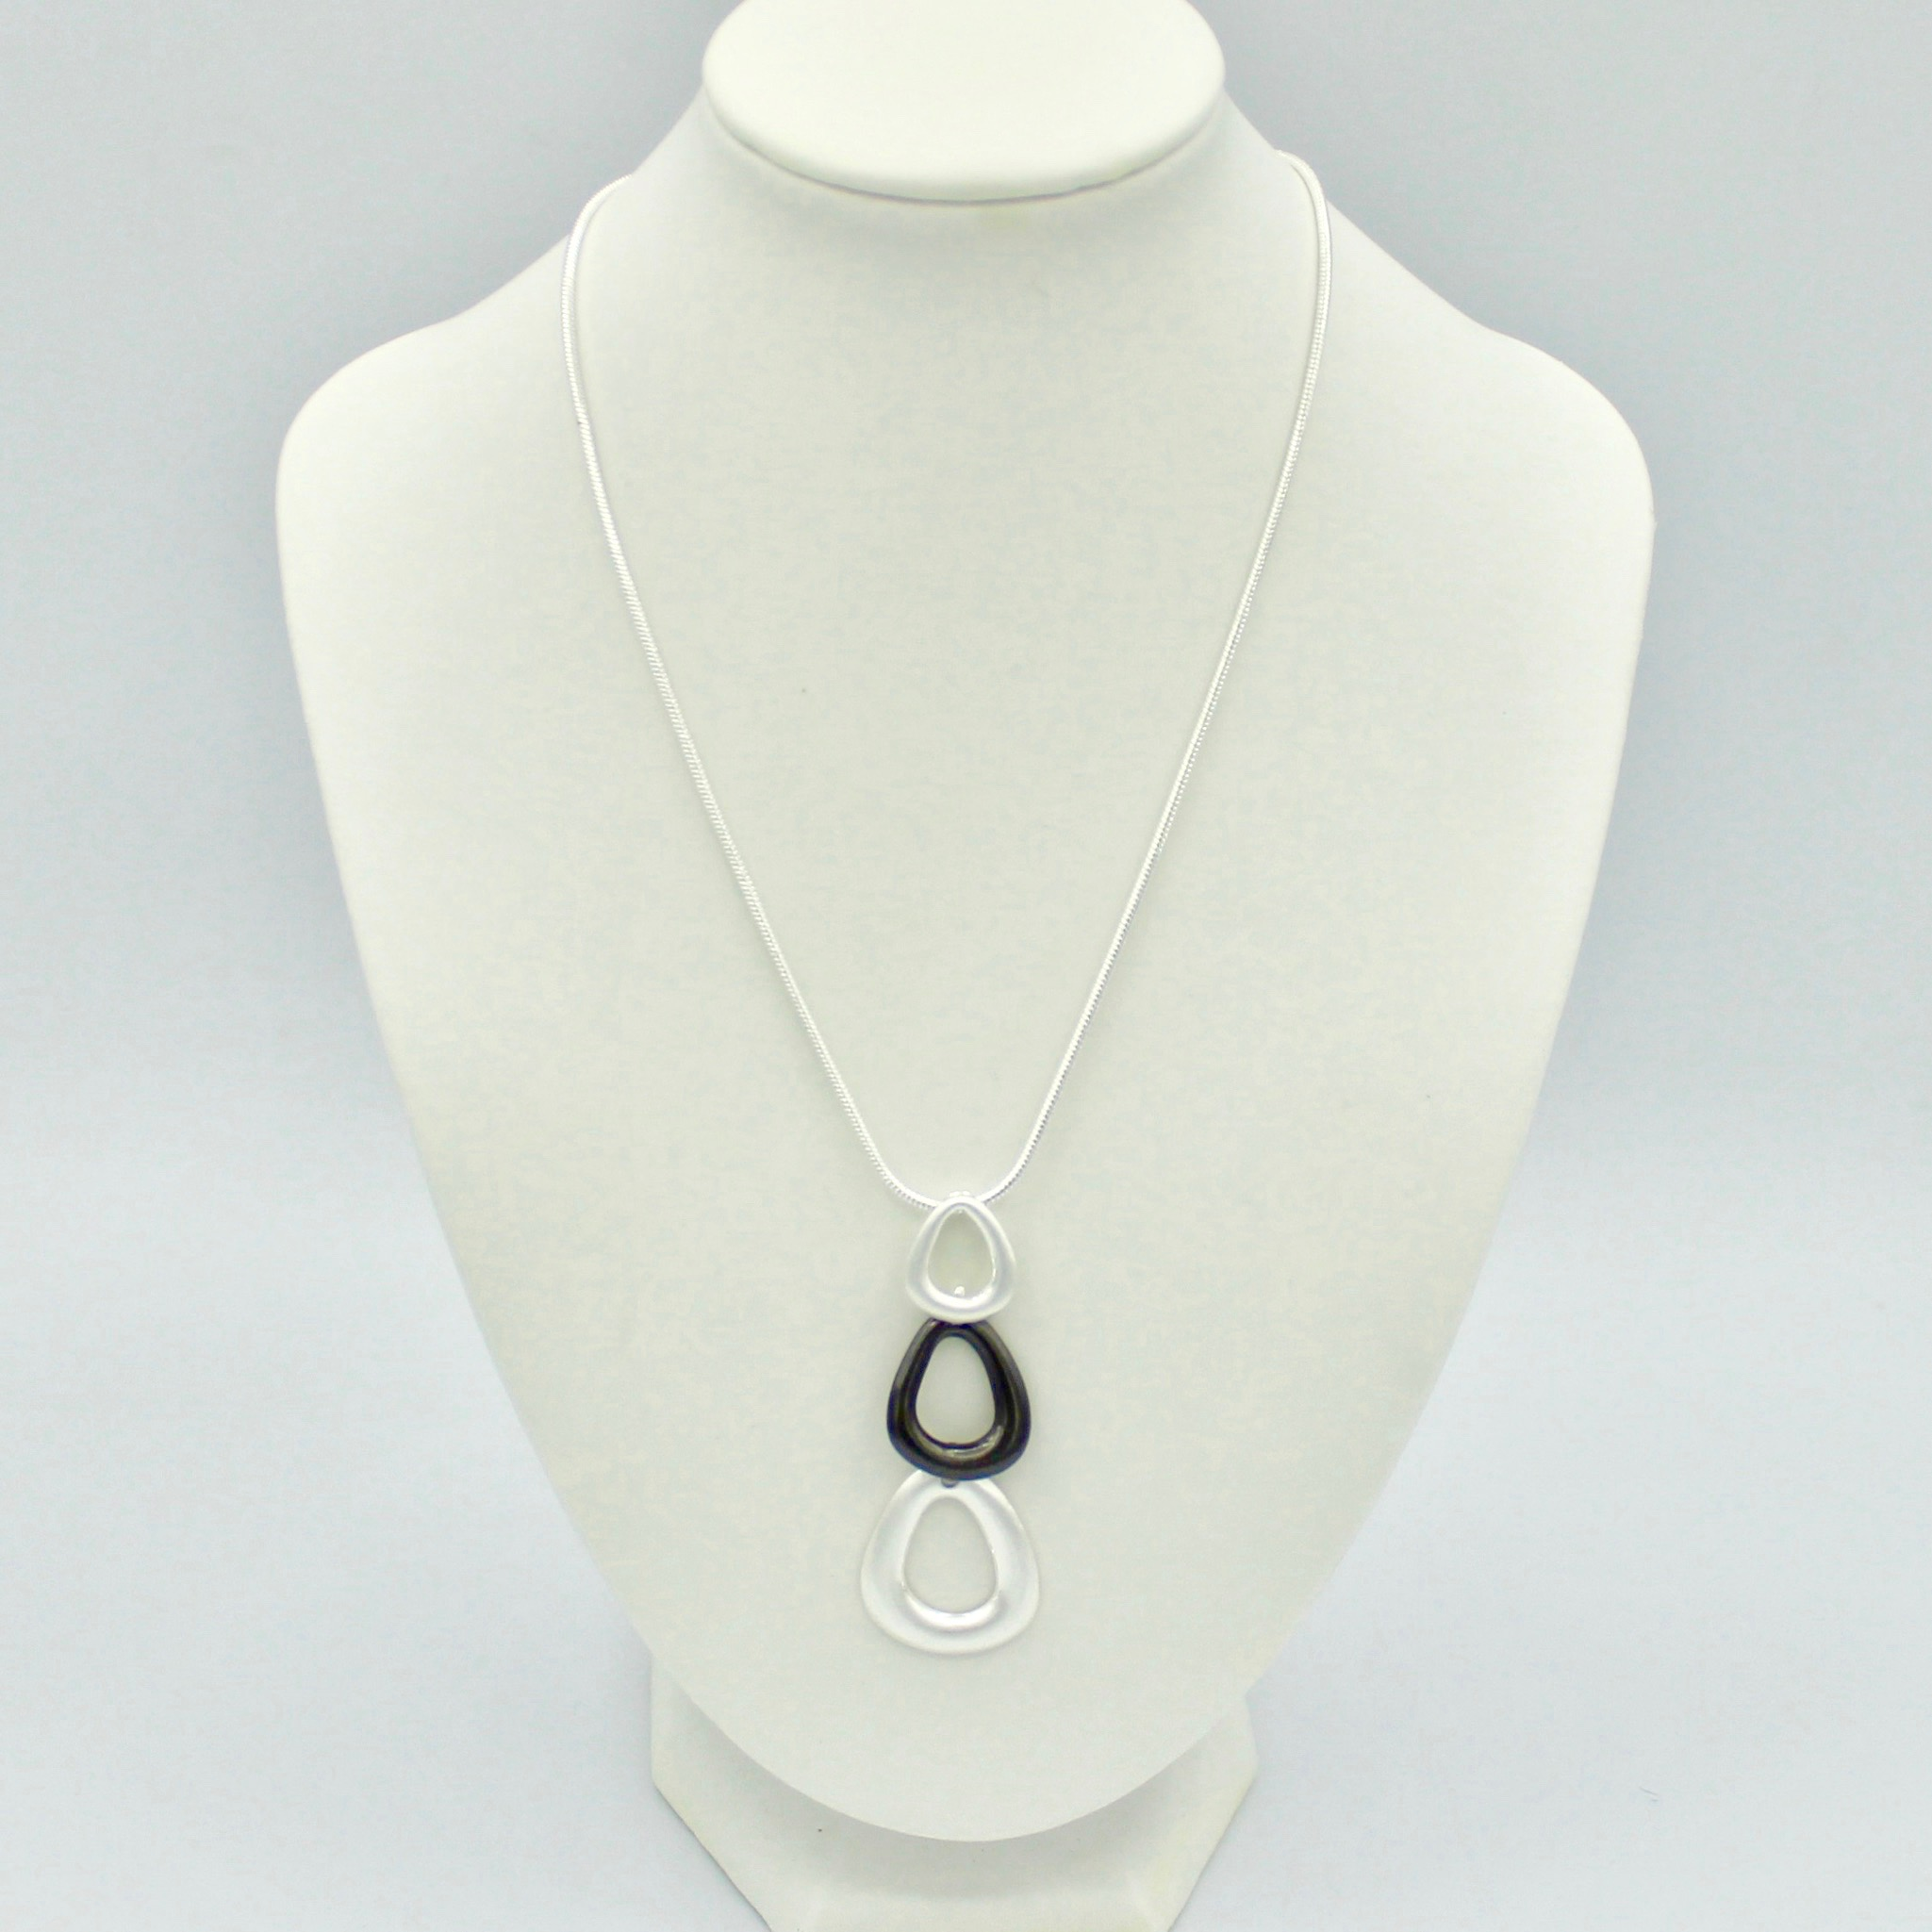 2 Toned Pearl shaped necklace